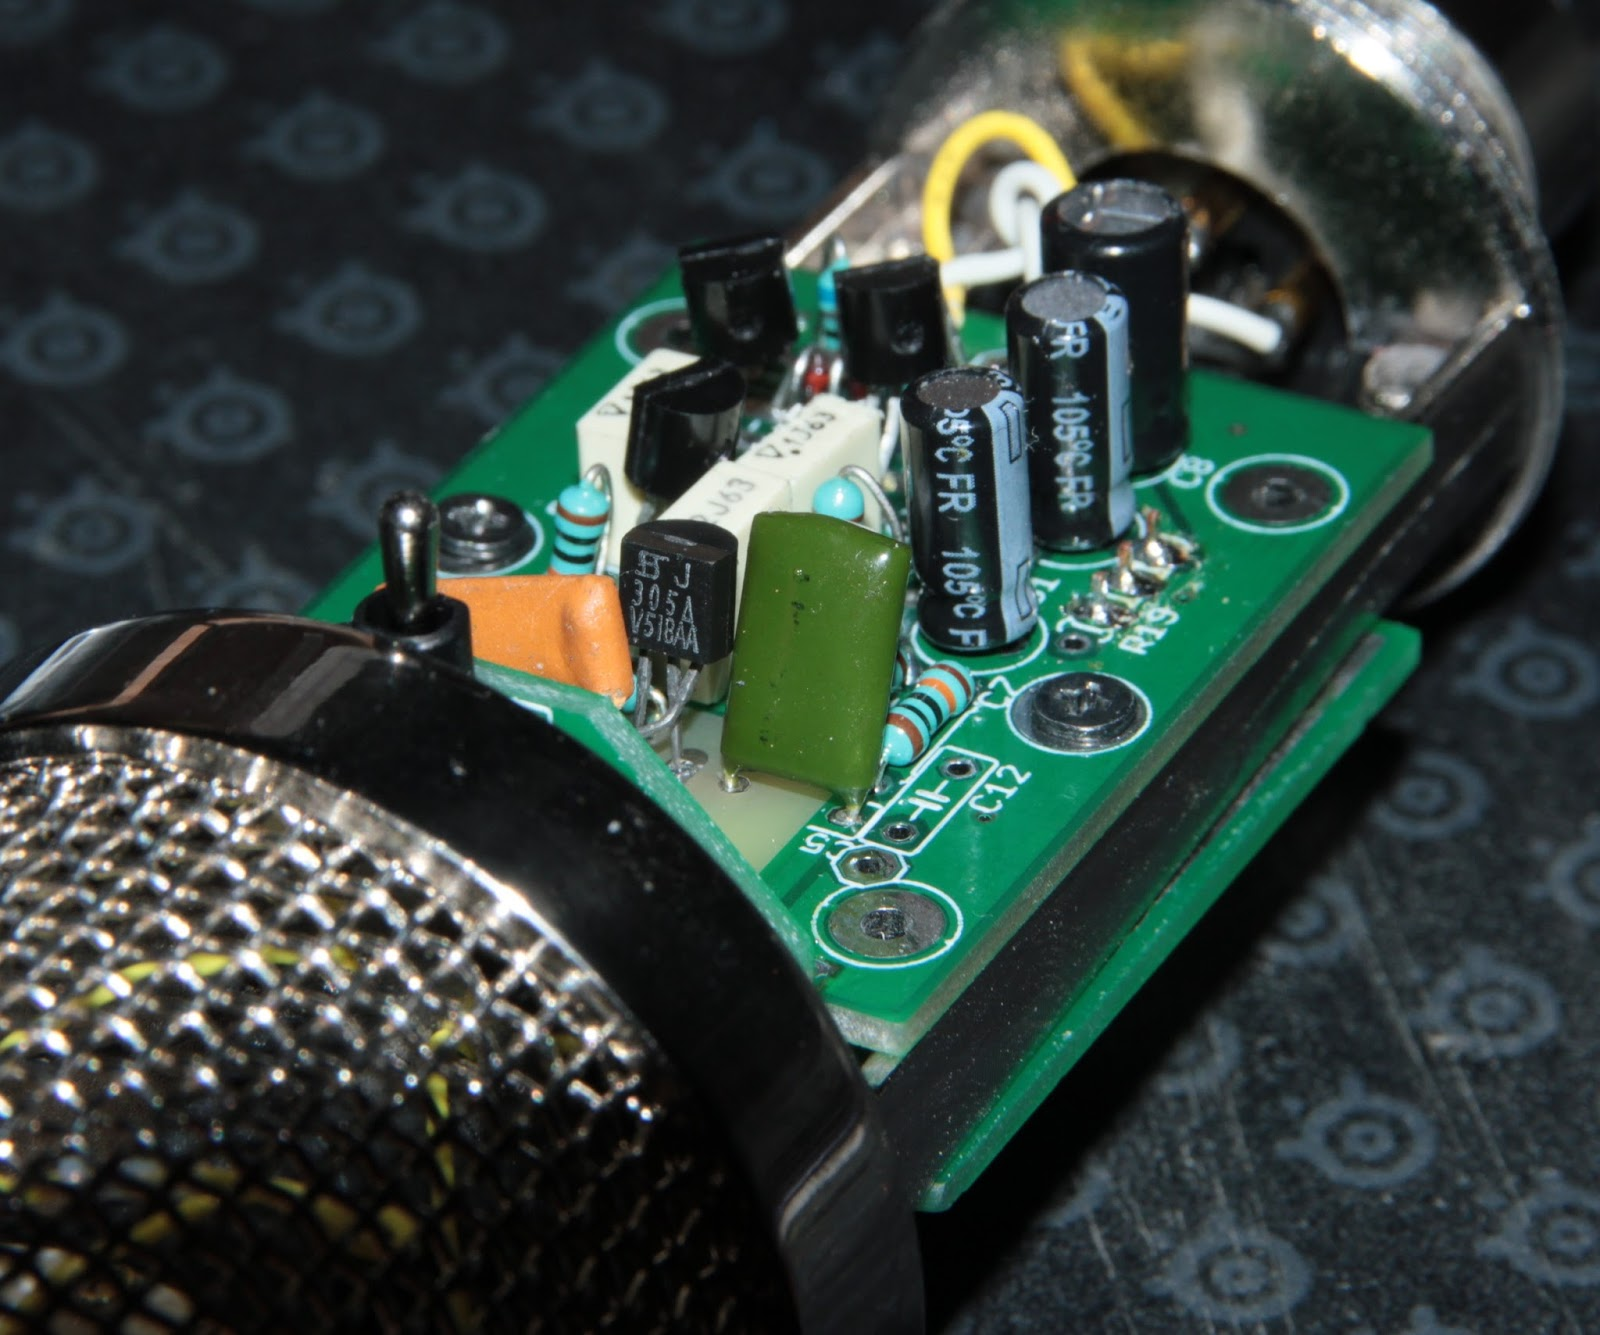 Khrons Cave 12 Cheap Chinese Bm800 Microphone Modding Upgrade Why Do You Pass A Mic Vout Through Capacitor Basic Electronics Before Freak Out No I Didnt Install The 1m Bias Trimmer For Jfet Gate Resistor On One Hand Because It Was Too Tall Body Tube To Fit